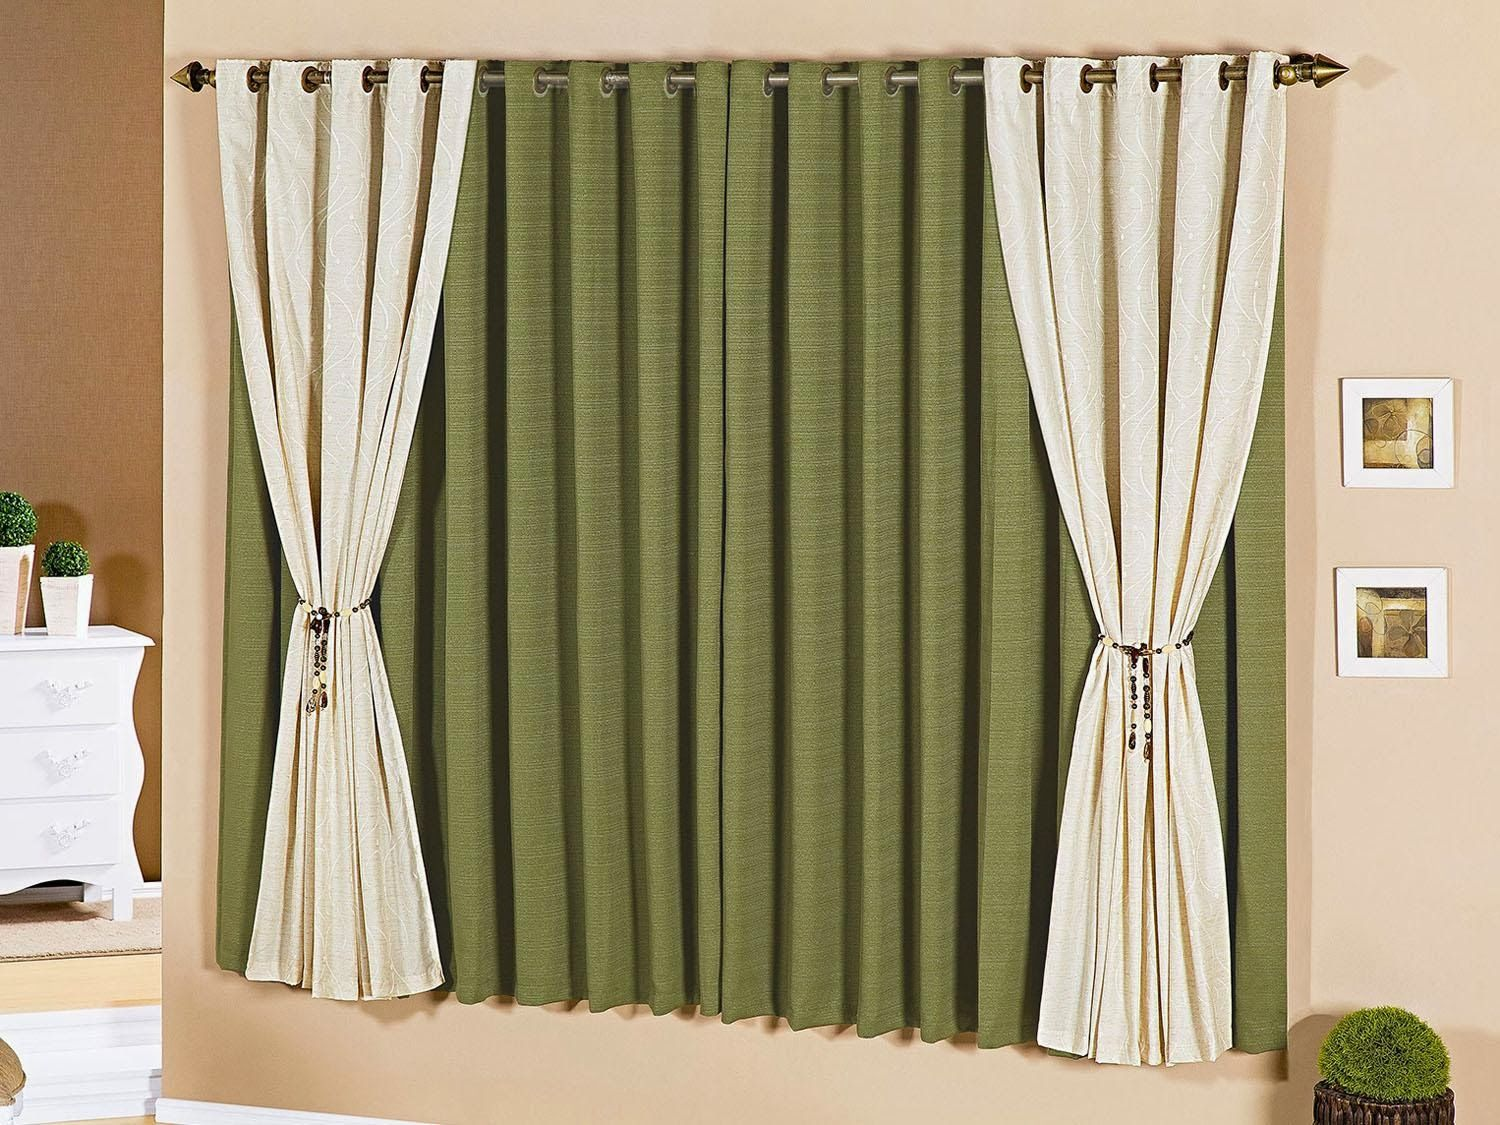 Resultado De Imagen Para Cortinas De Moda Para Sala Living Room Decor Curtains Curtain Designs Curtains